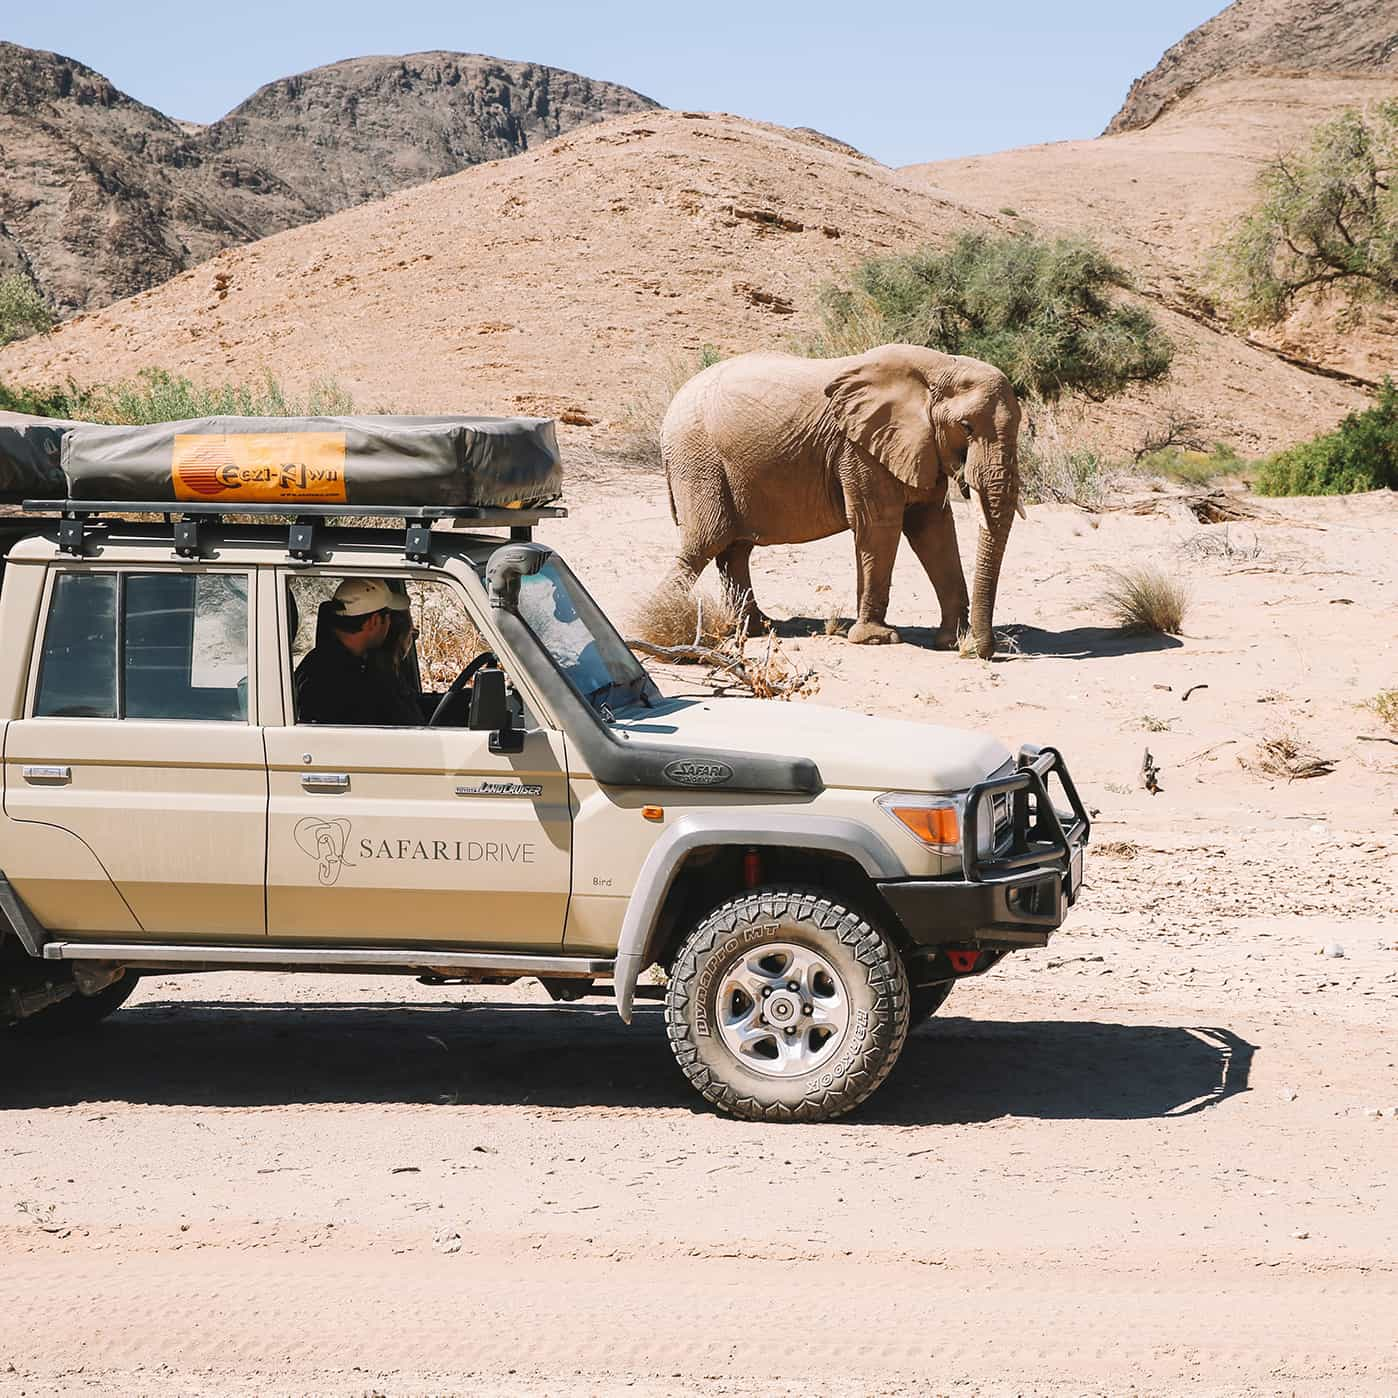 Safari Drive Land Cruiser driving passing a dusty elephant in the background